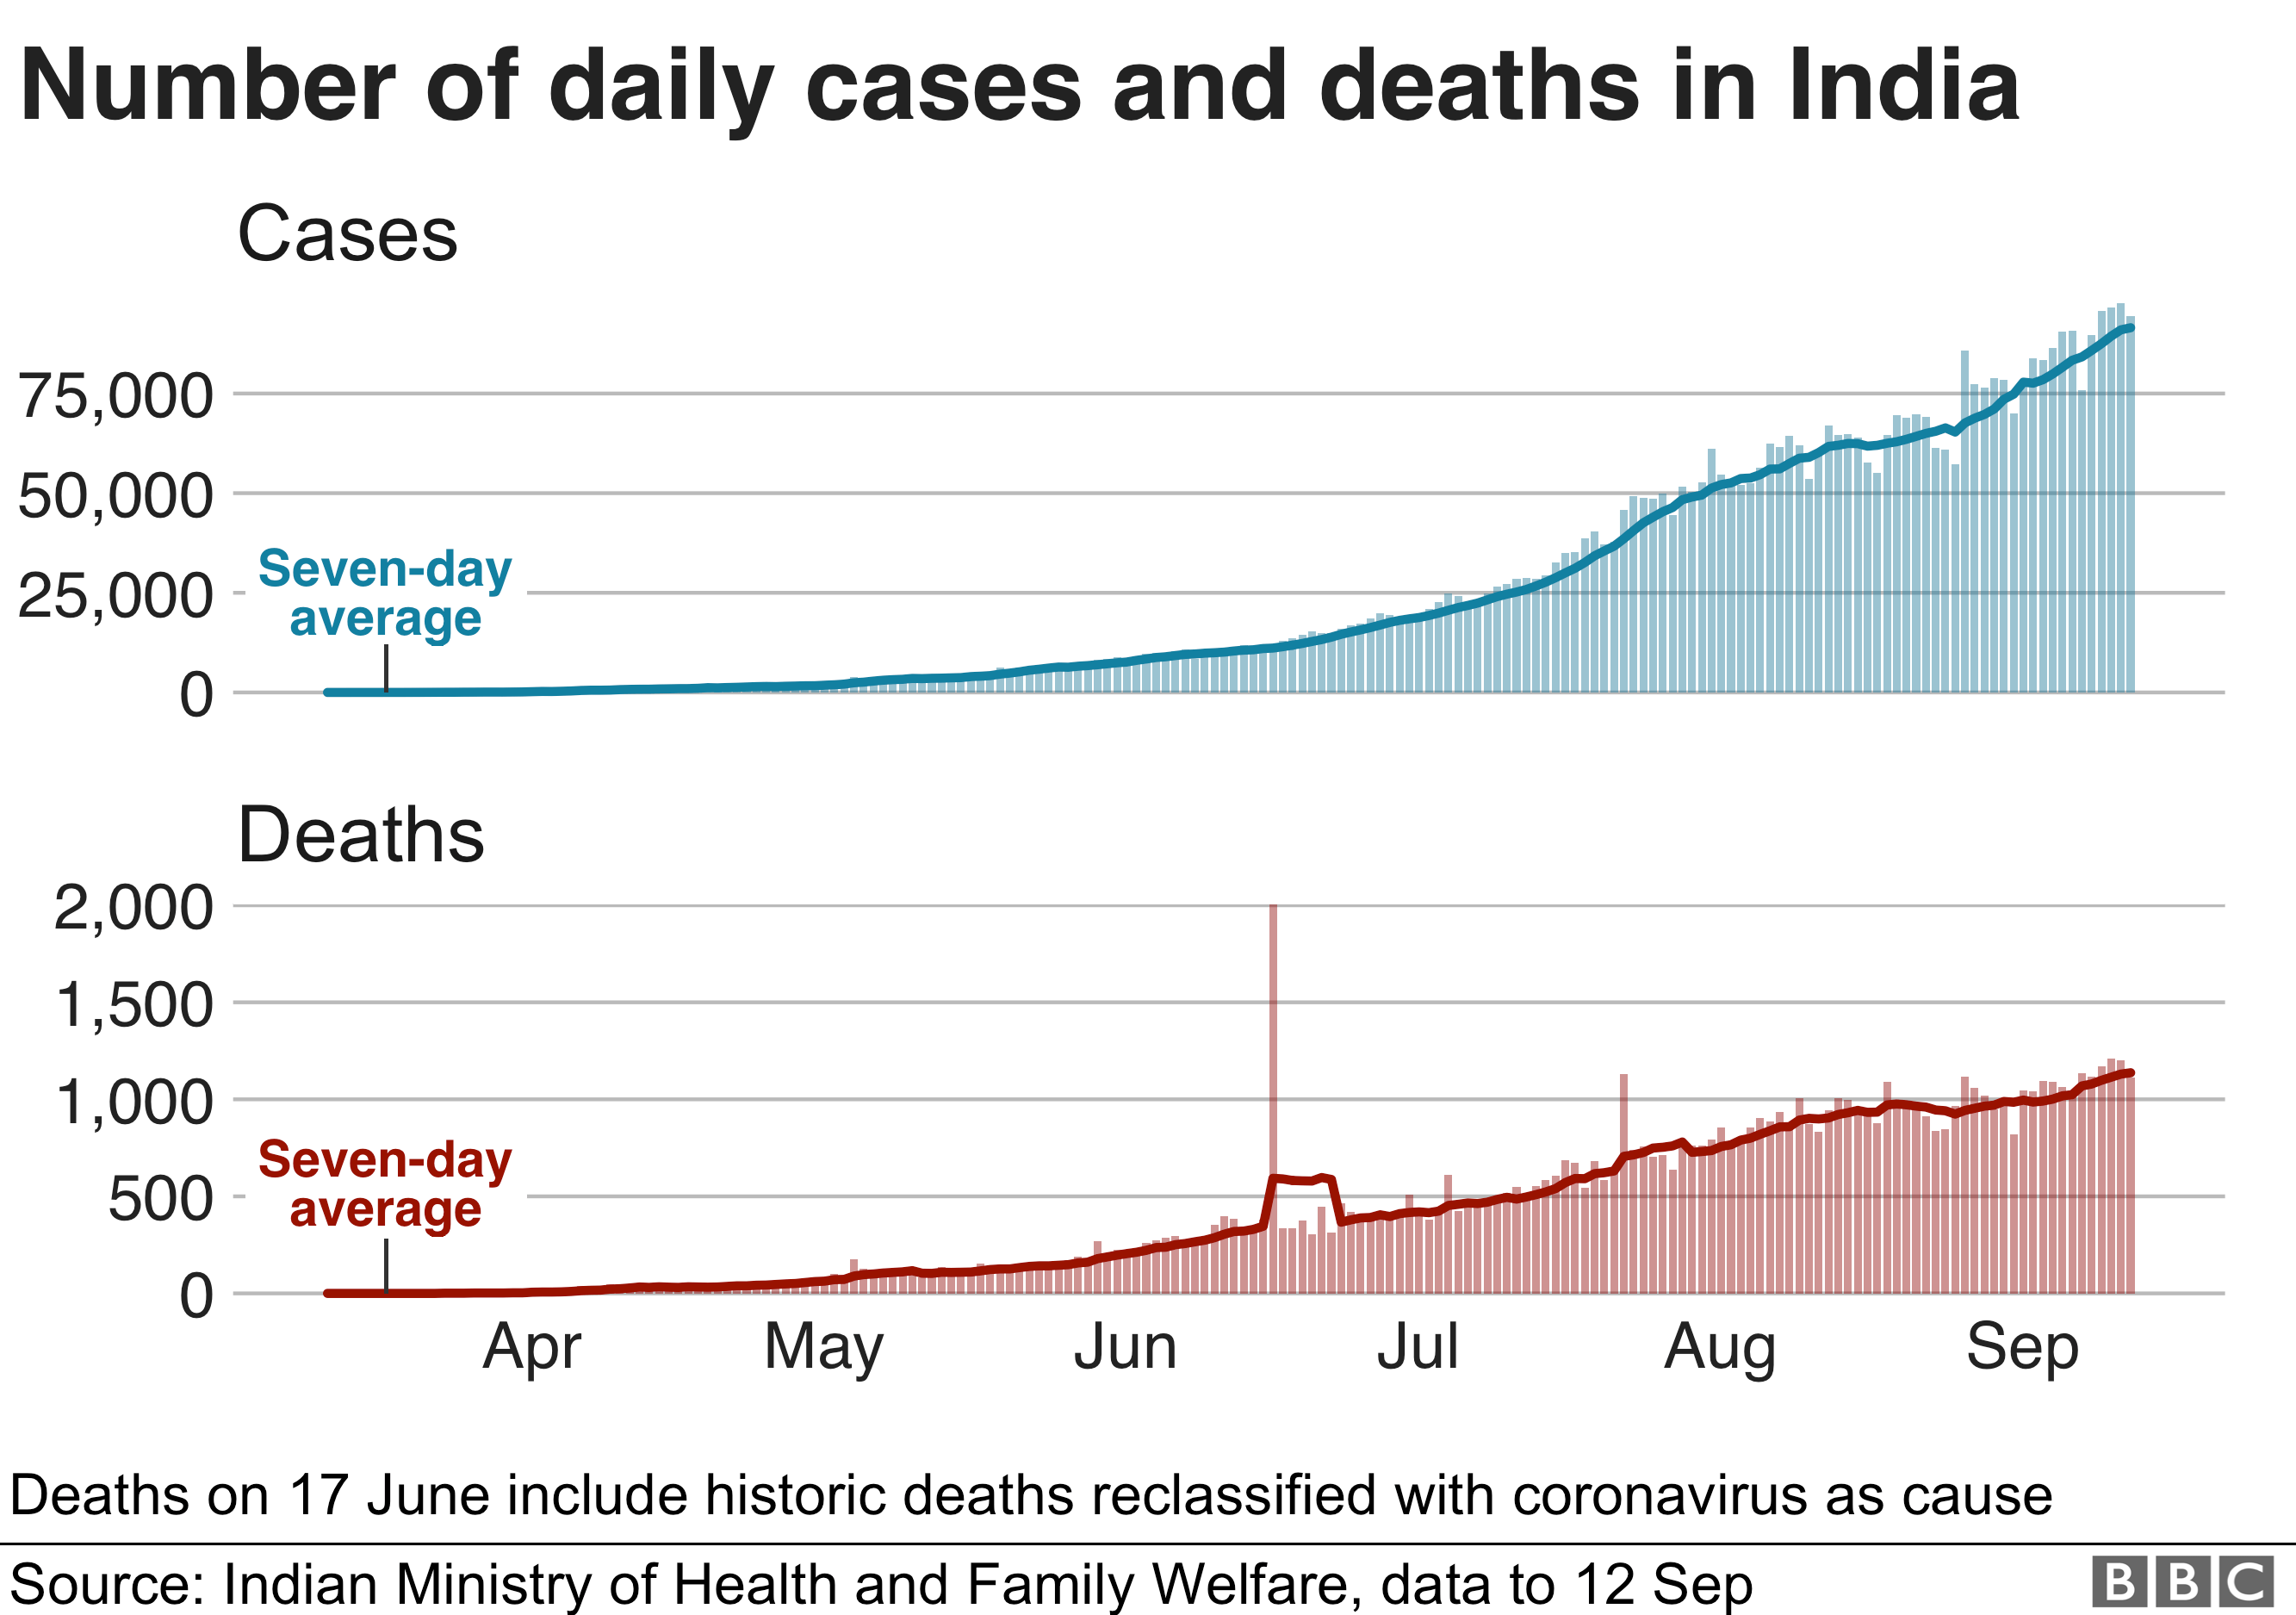 Charts shows daily cases and deaths in India are still rising